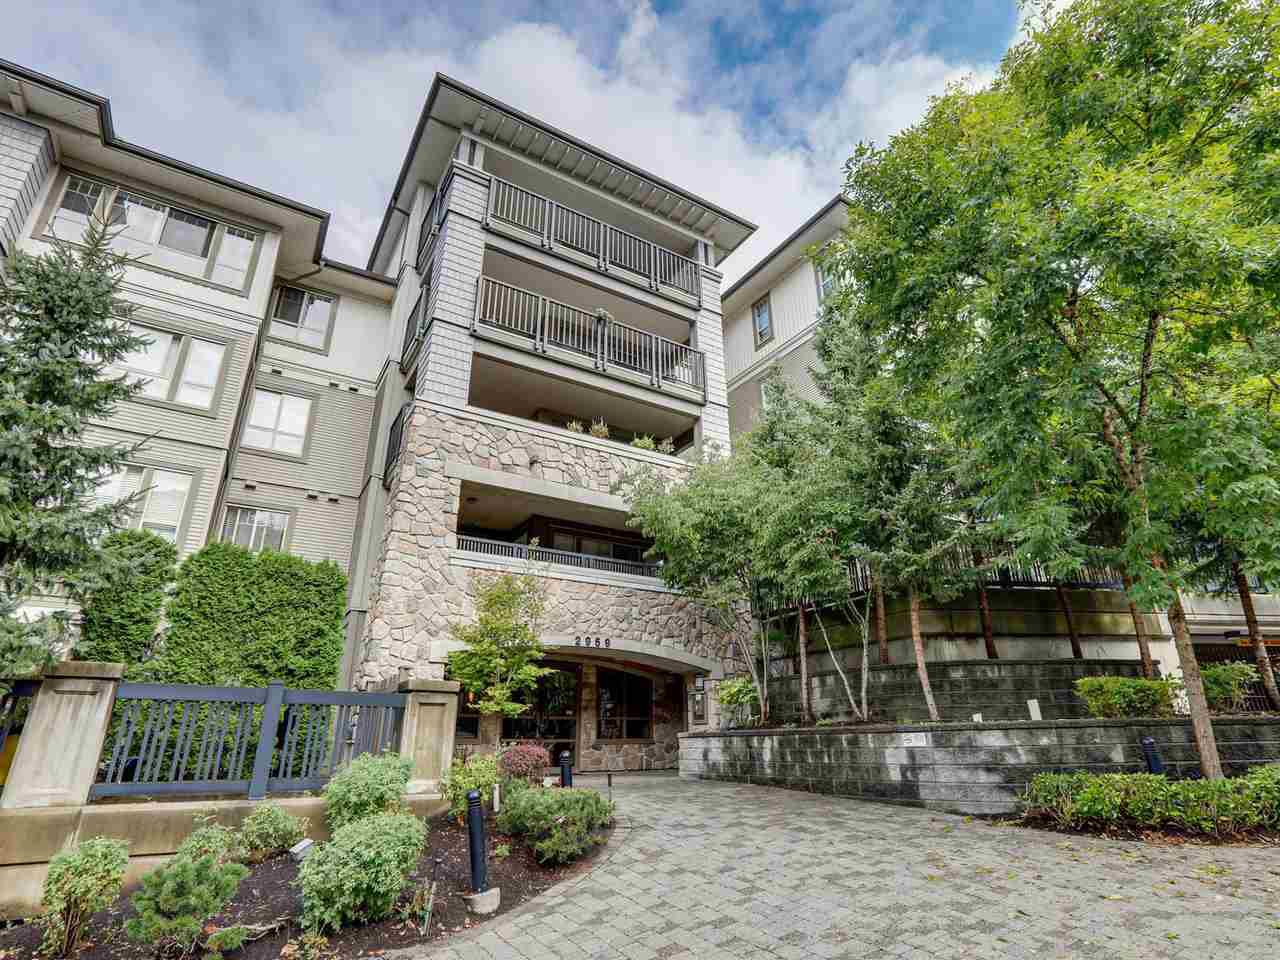 """Main Photo: 106 2959 SILVER SPRINGS Boulevard in Coquitlam: Westwood Plateau Condo for sale in """"TANTALUS"""" : MLS®# R2405133"""